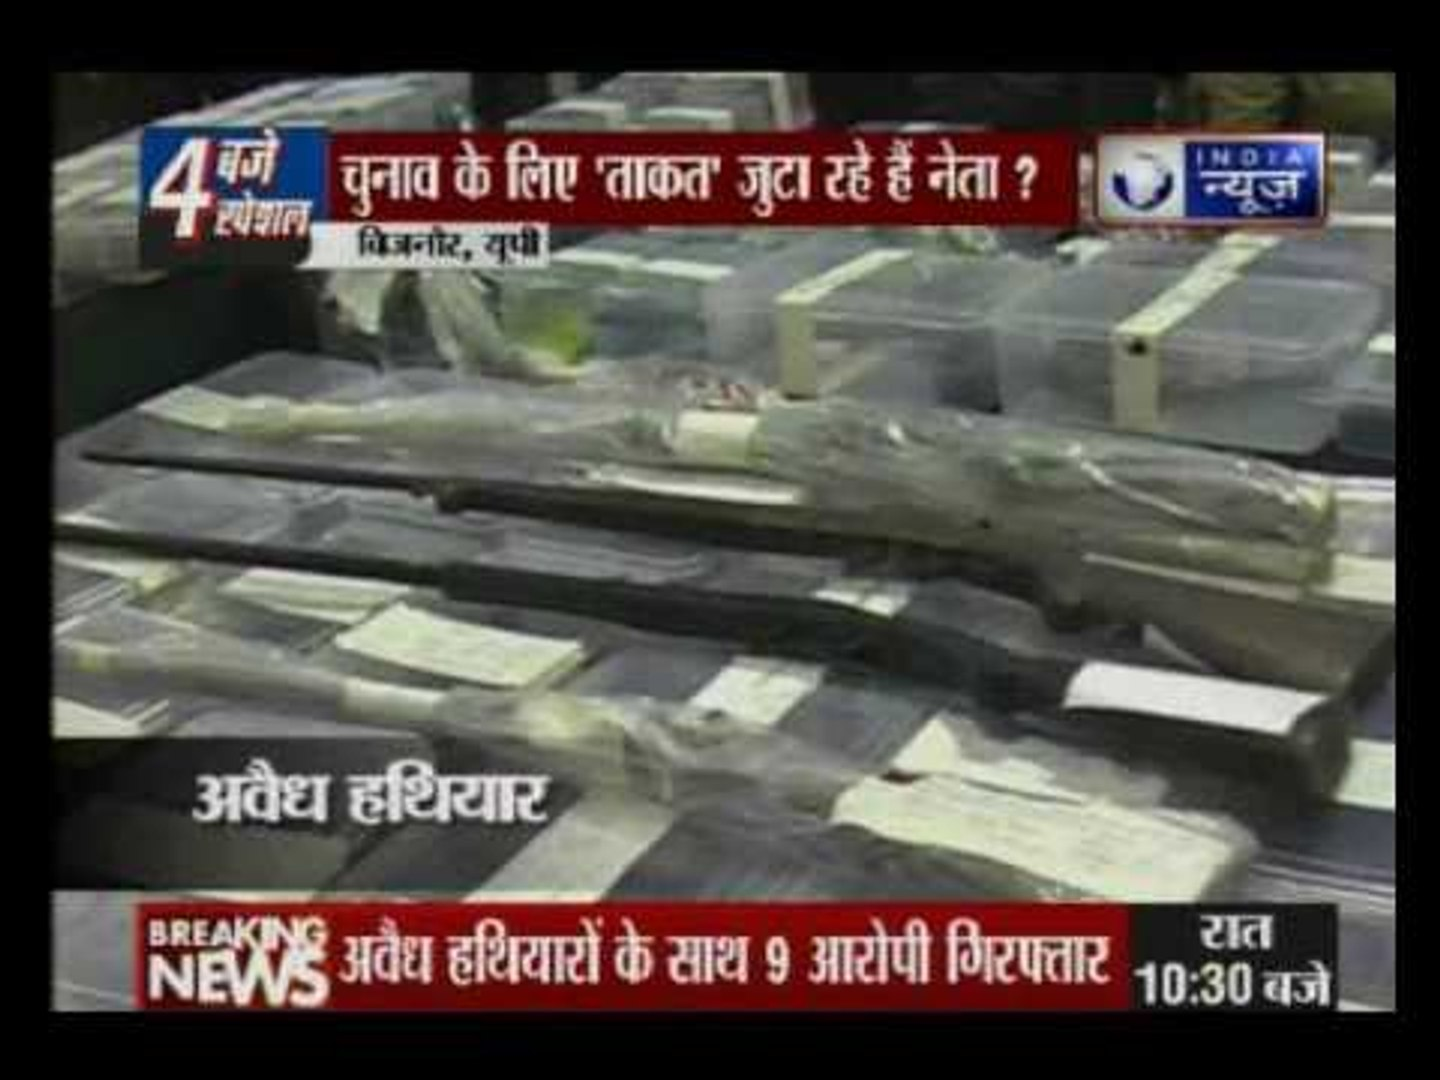 Uttar Pradesh: Police seized  illegal weapons factory in Bijnor, more than 250 weapons recovered